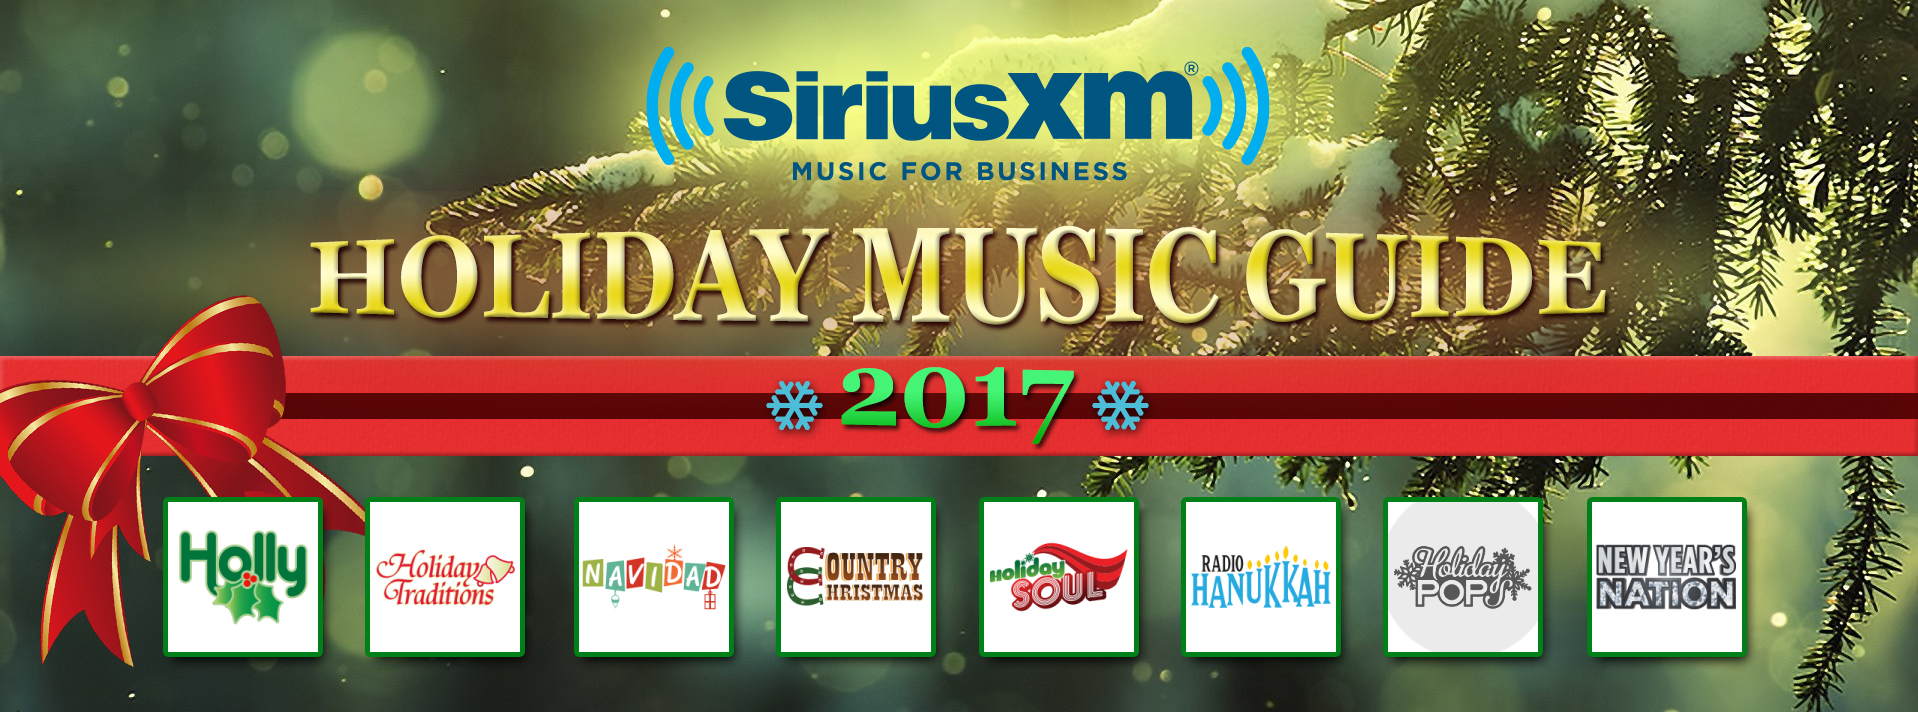 holiday music for business siriusxm holiday music channels - What Channel Is Christmas Music On Sirius Xm